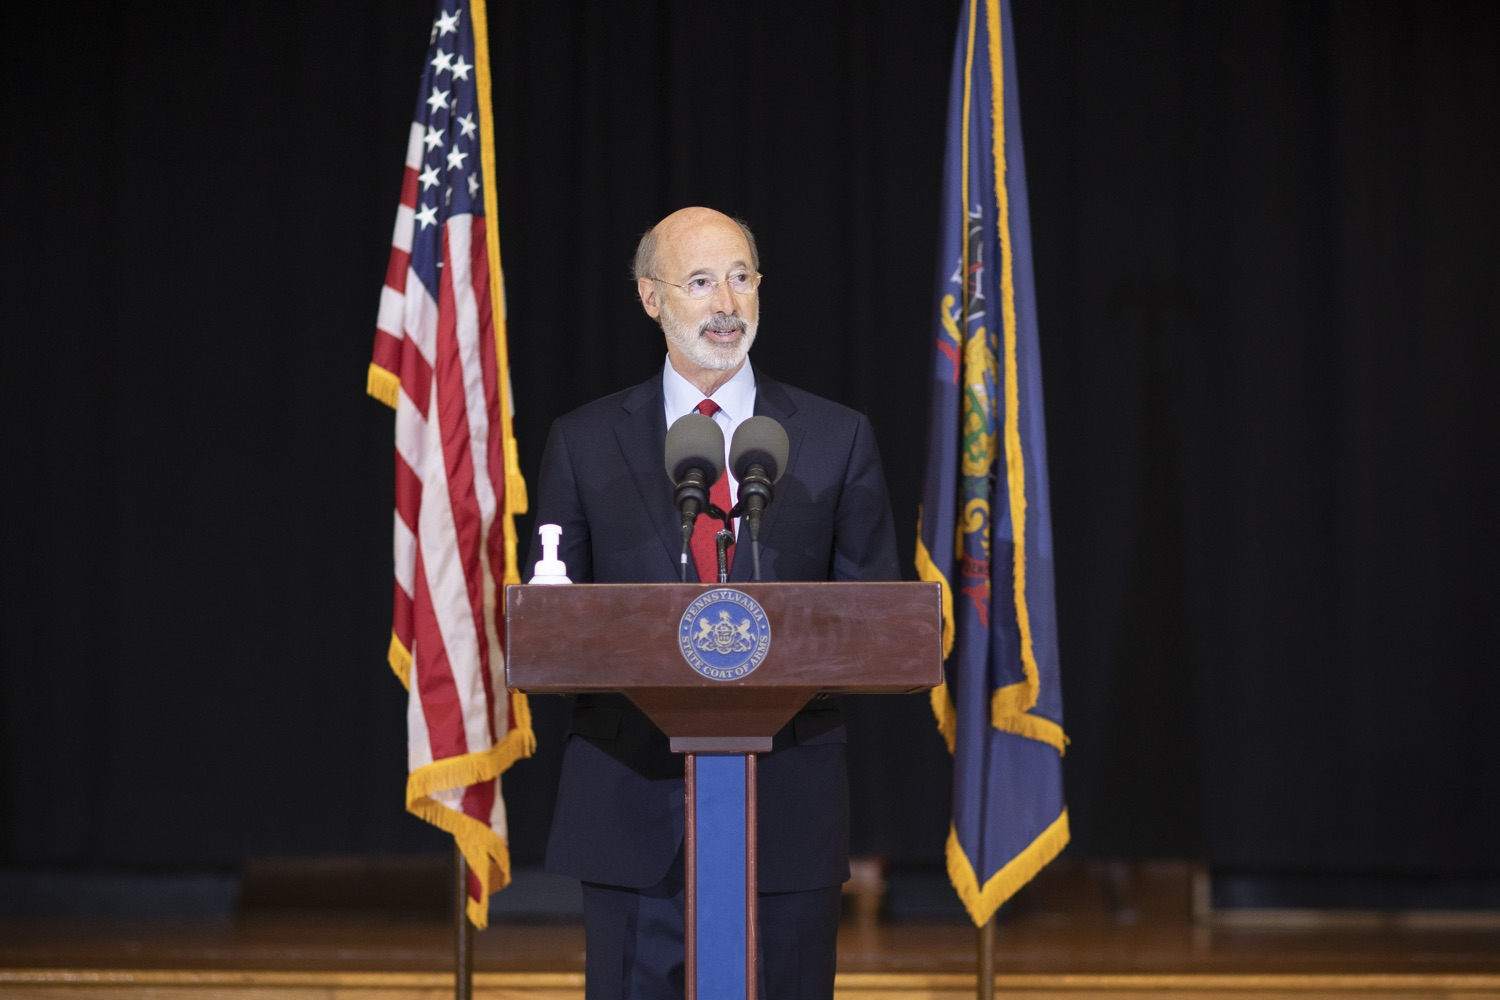 "<a href=""https://filesource.wostreaming.net/commonwealthofpa/photo/18310_gov_adult_use_cannabis_dz_018.jpg"" target=""_blank"">⇣ Download Photo<br></a>Governor Tom Wolf speaks to the press.Governor Tom Wolf visited The Mountain Center in Tobyhanna, Monroe County today to talk about the economic growth potential and restorative justice benefits of legalizing adult-use cannabis, something the state General Assembly has not yet done despite multiple requests from the governor and Lieutenant Governor John Fetterman to take up legislation this fall.  Tobyhanna, PA  October 13, 2020"